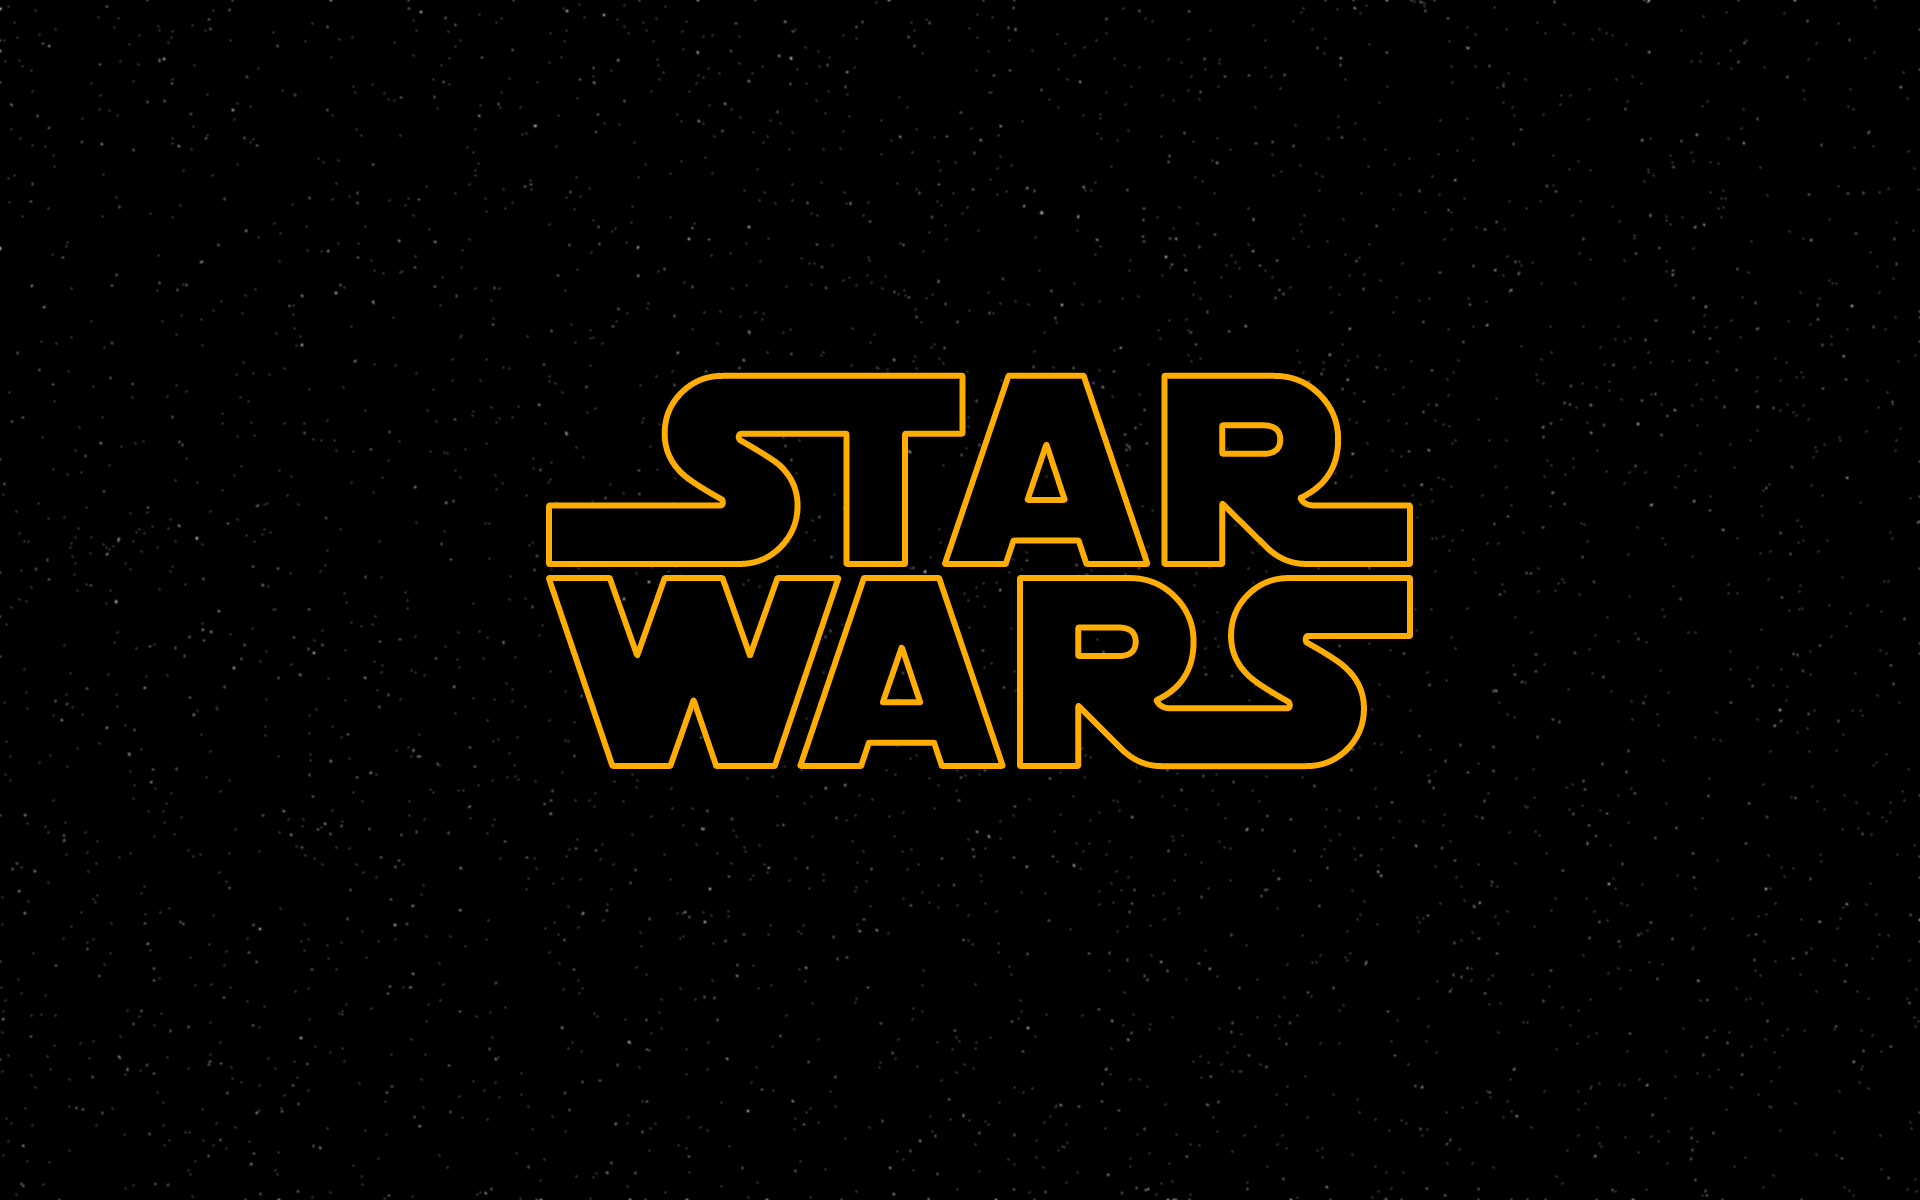 star wars logos logo HD Wallpaper